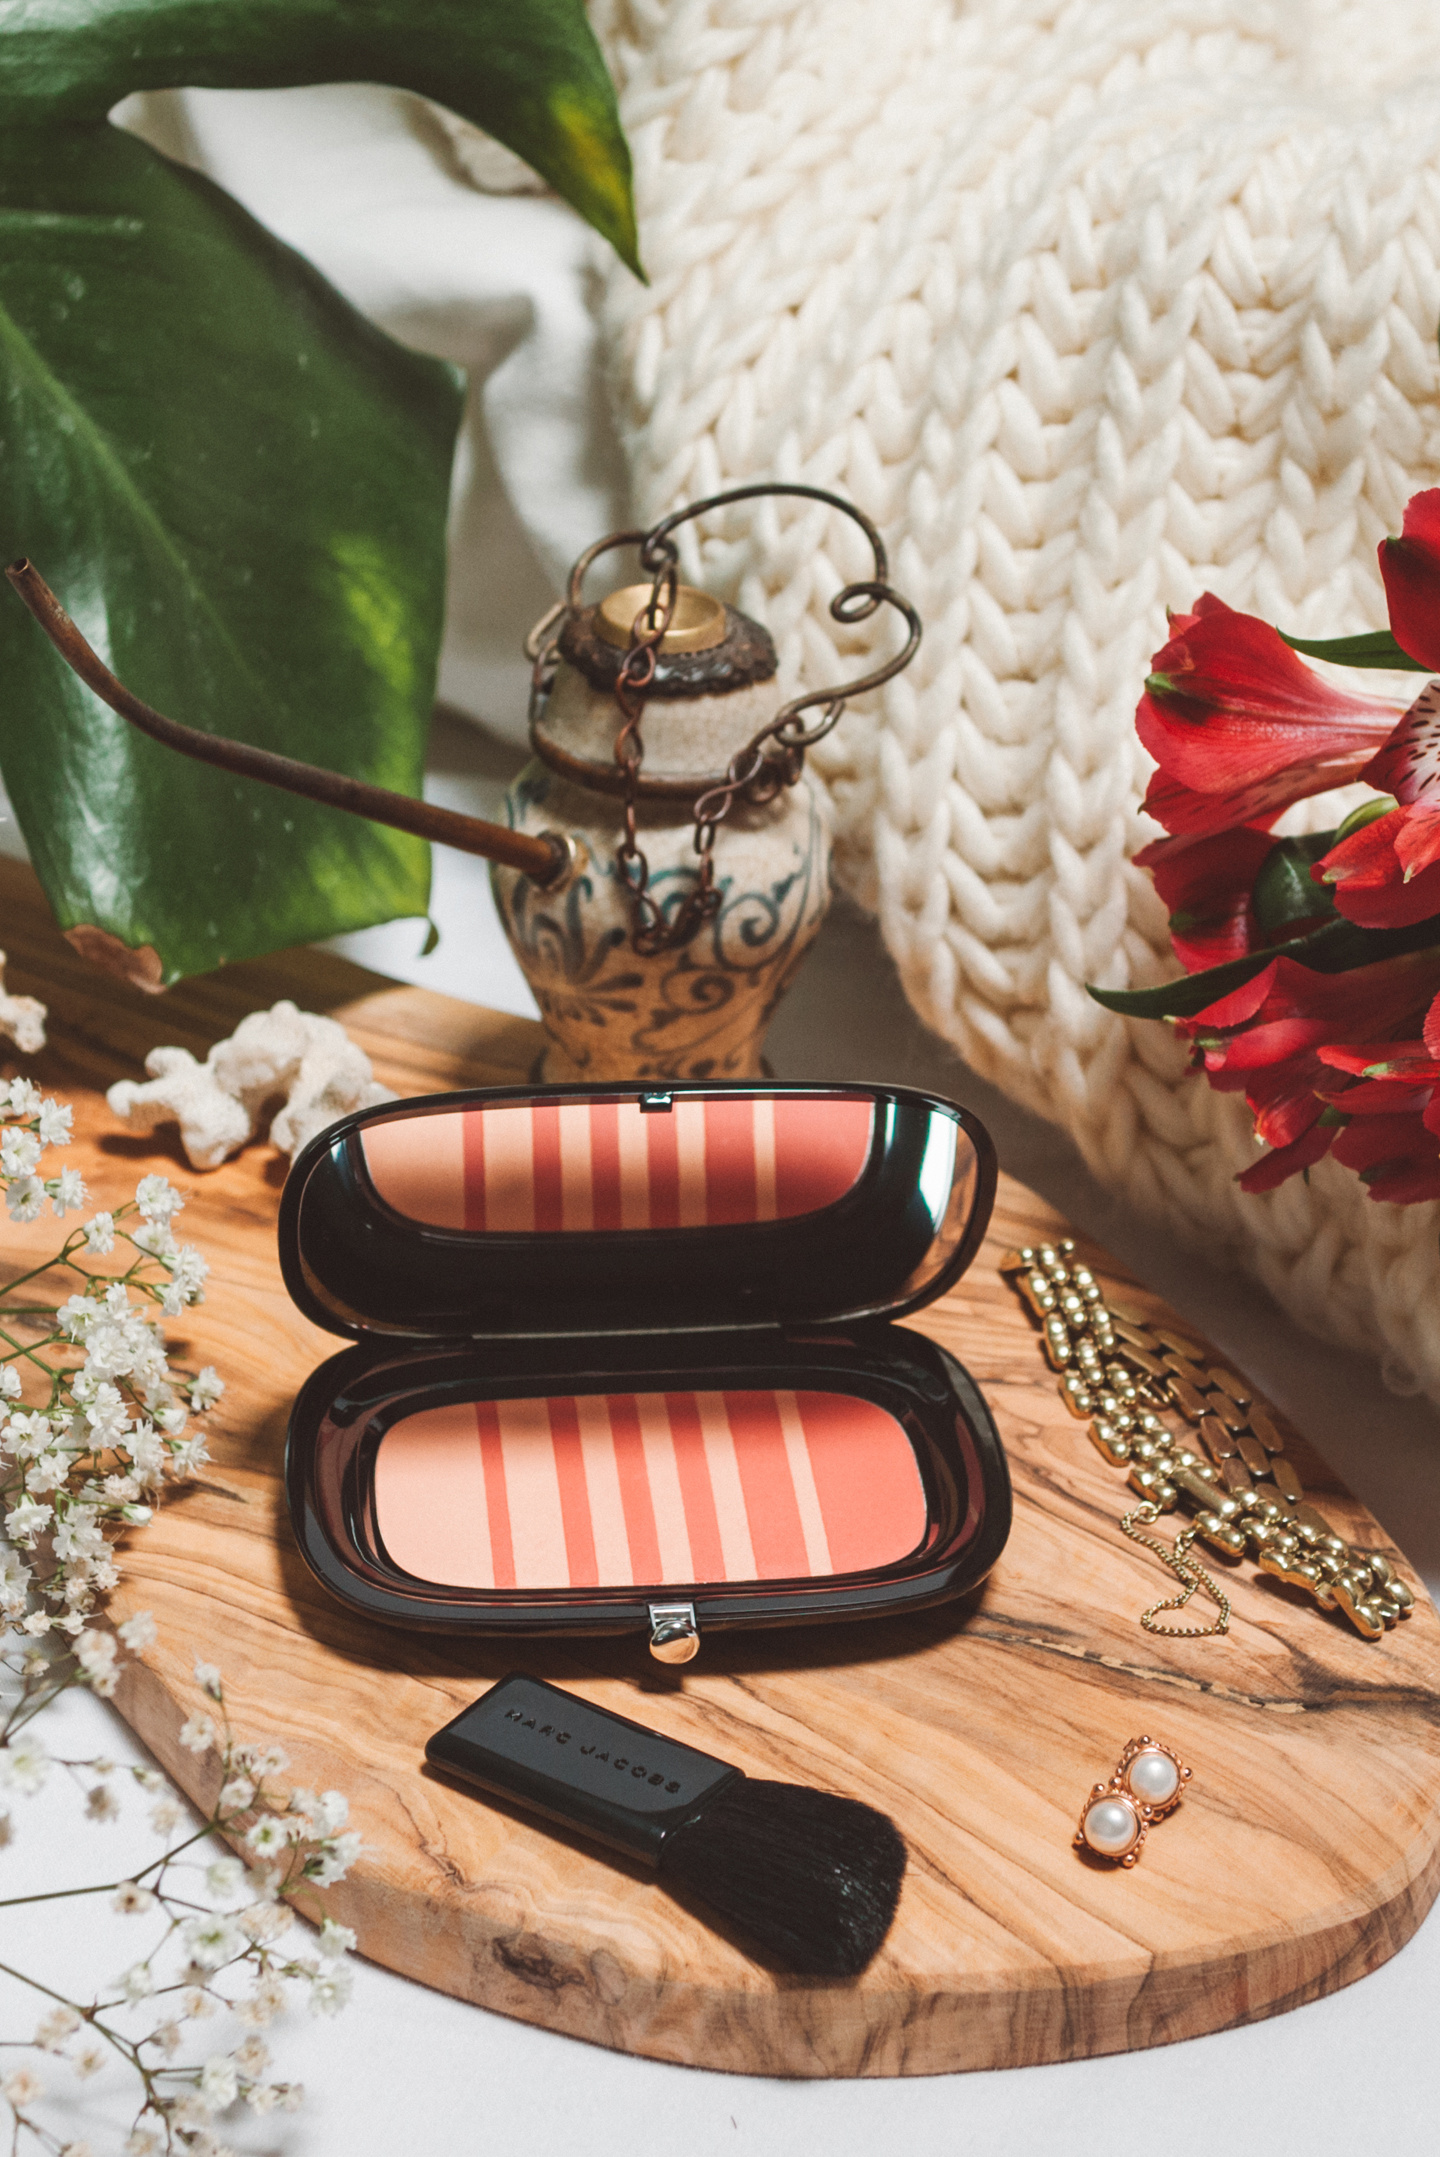 Air Blush Soft Glow Duo Marc Jacobs 502 Lines & last night